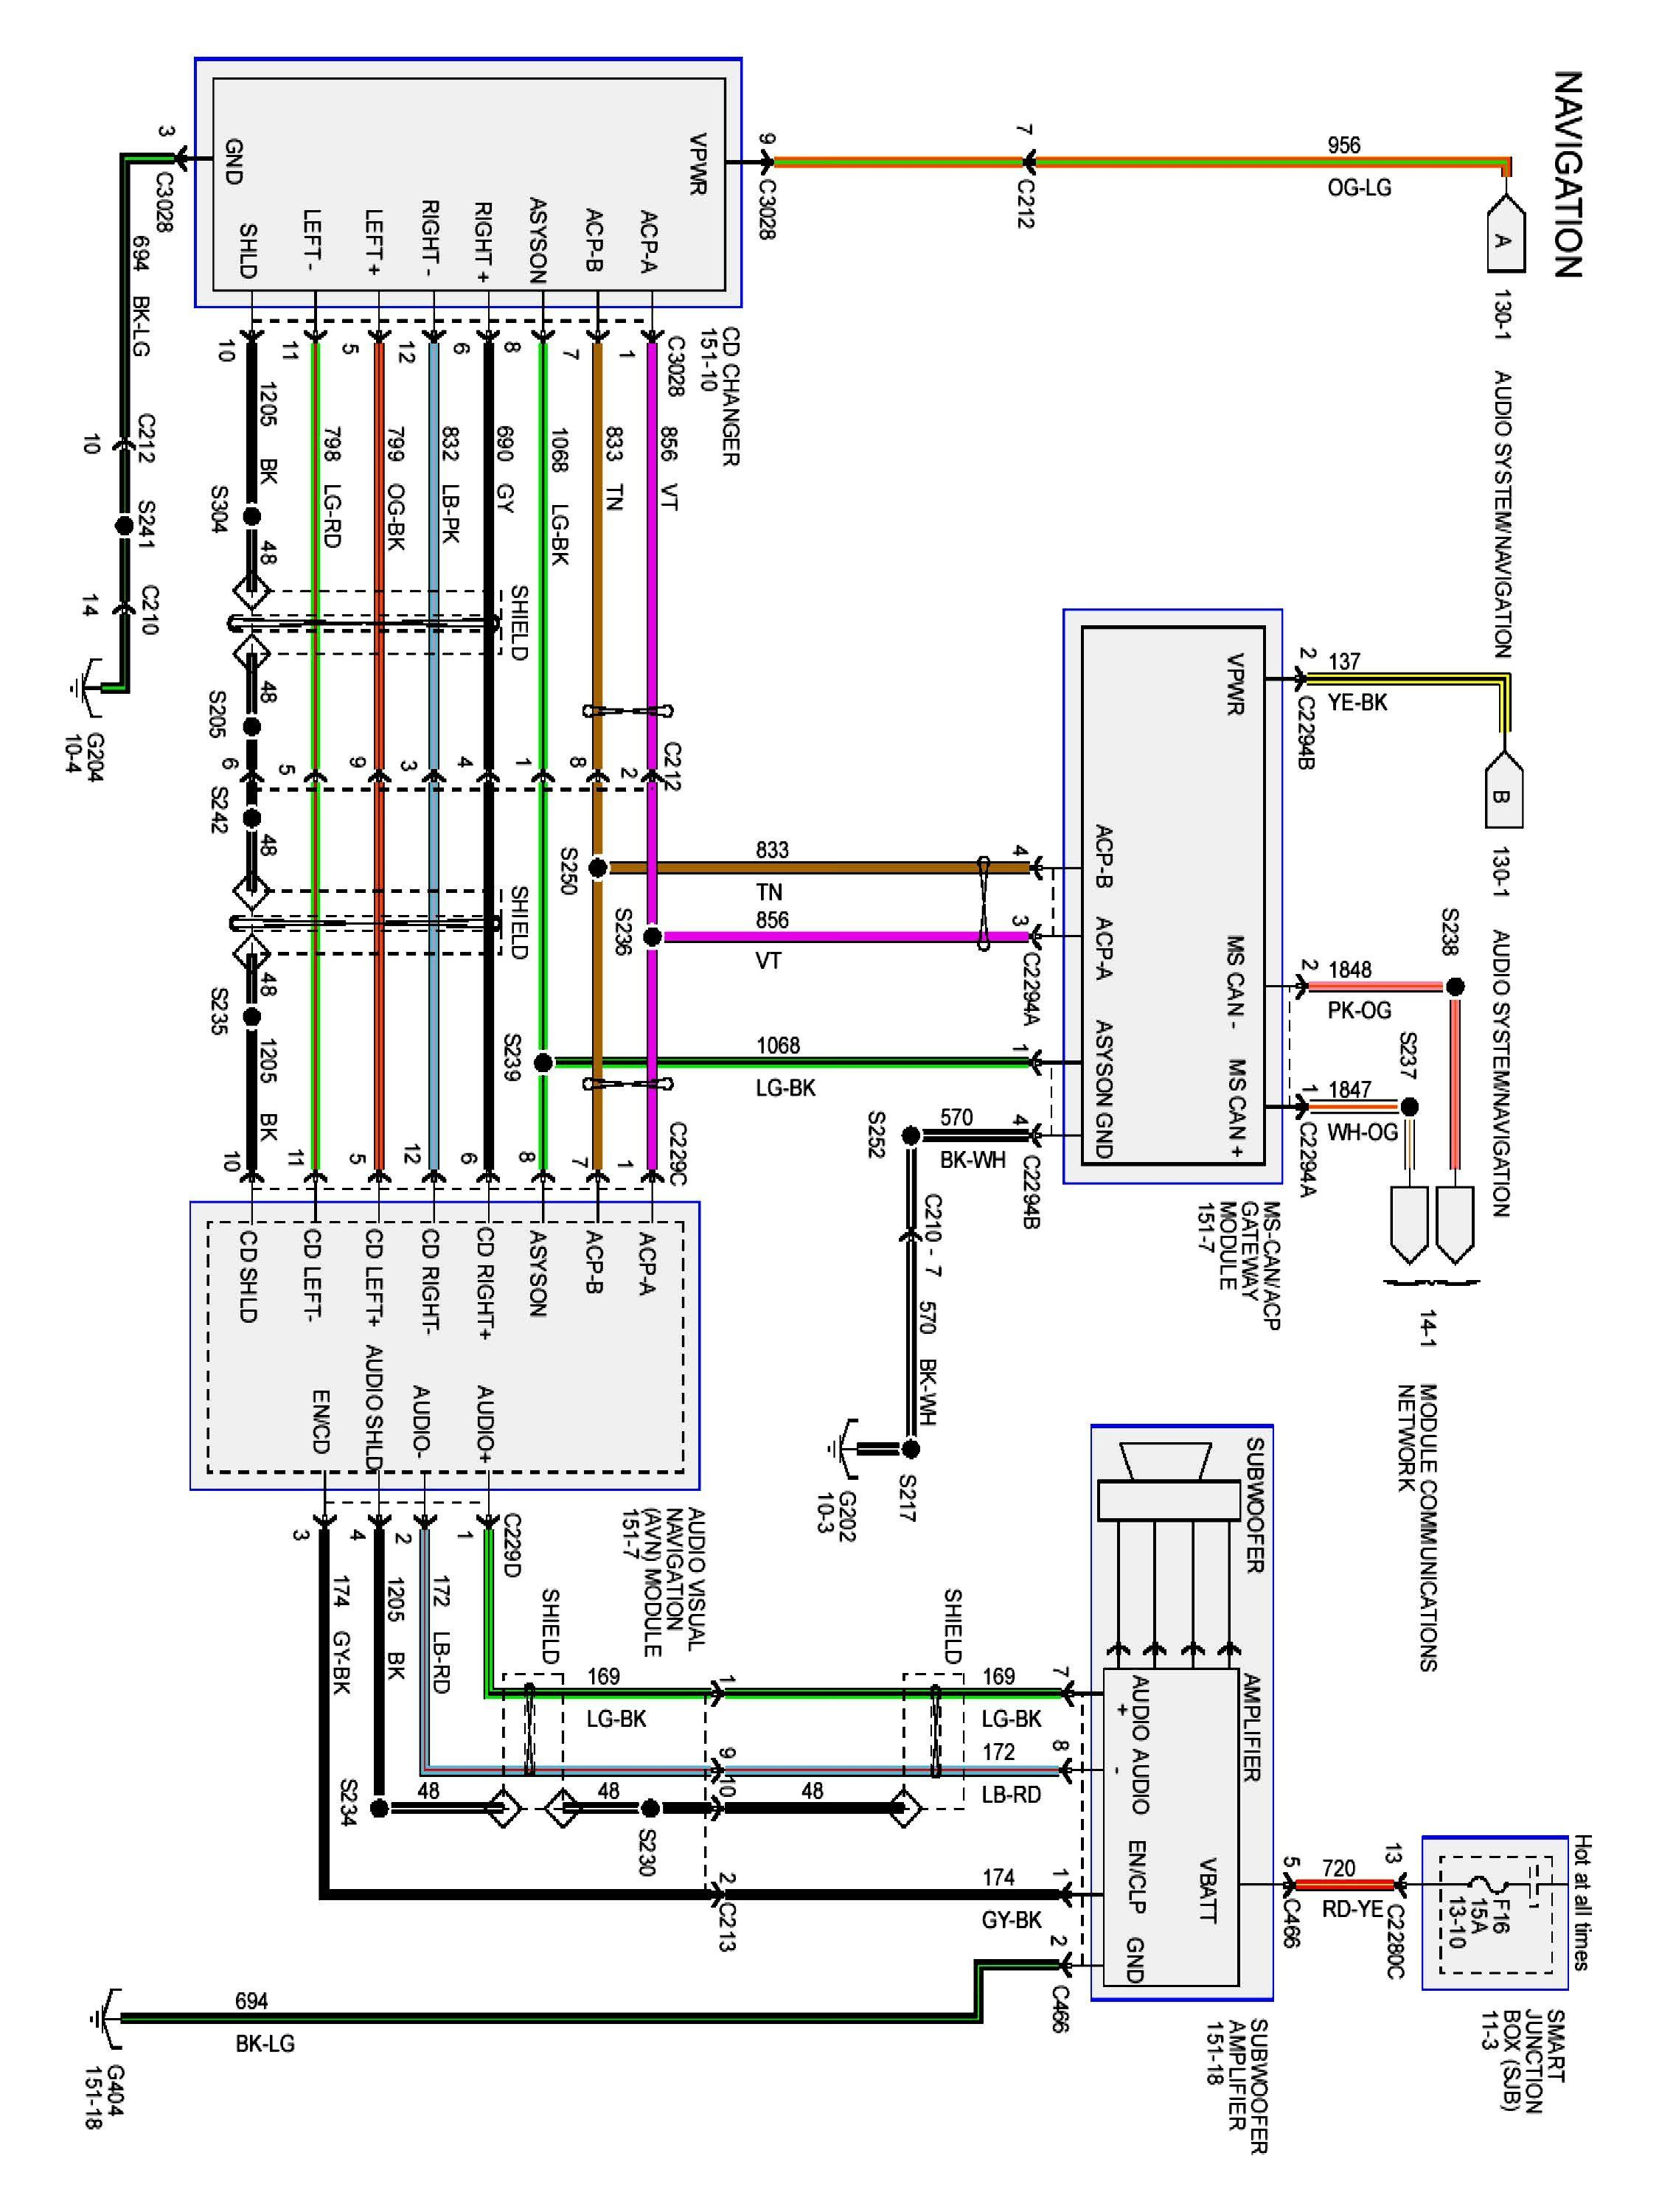 wiring diagram for 2007 camry jbl amp schematic diagram database 2007 camry radio wiring diagram 2007 camry wiring diagram [ 2250 x 3000 Pixel ]